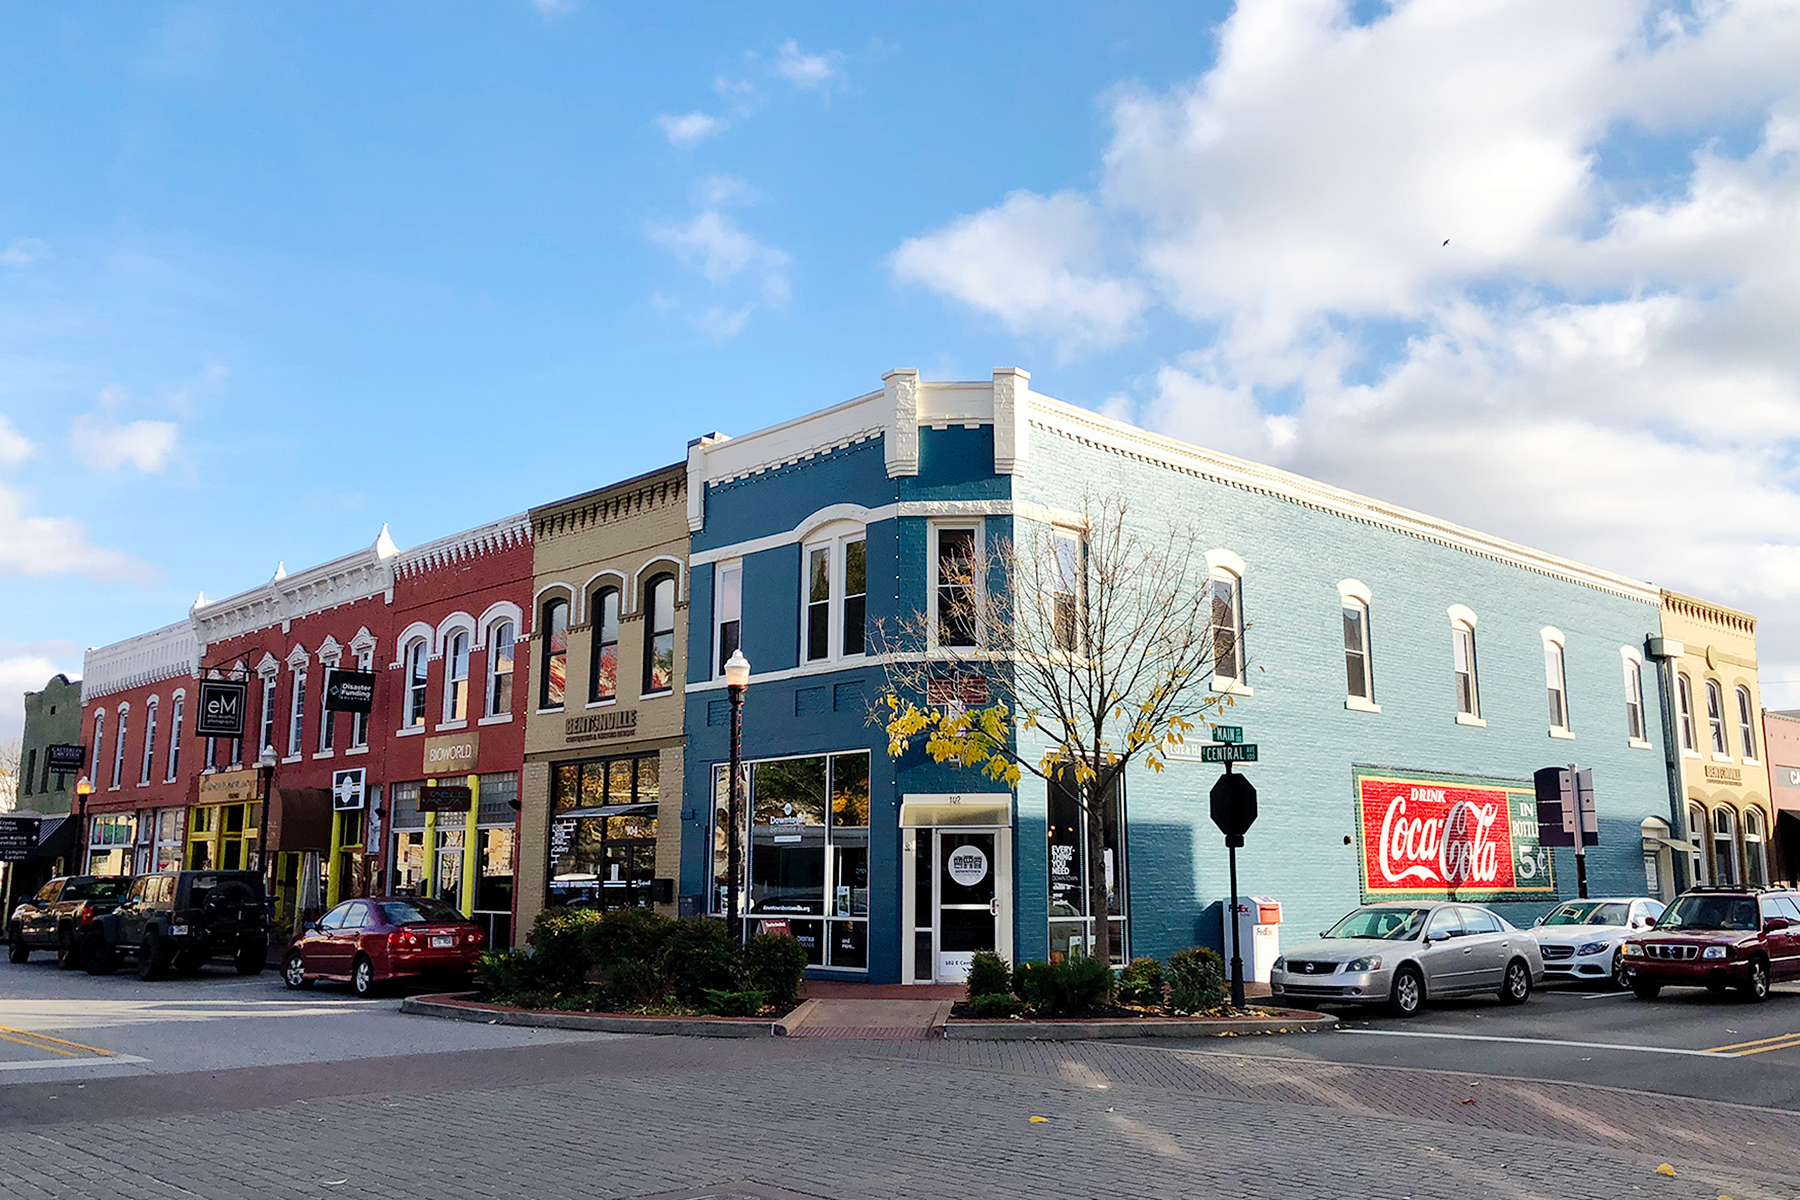 Good food, art, and outdoor adventure - you'll find it all in Bentonville, Arkansas. #TasteAndTravelBentonville #Ad @bentonvillecvb